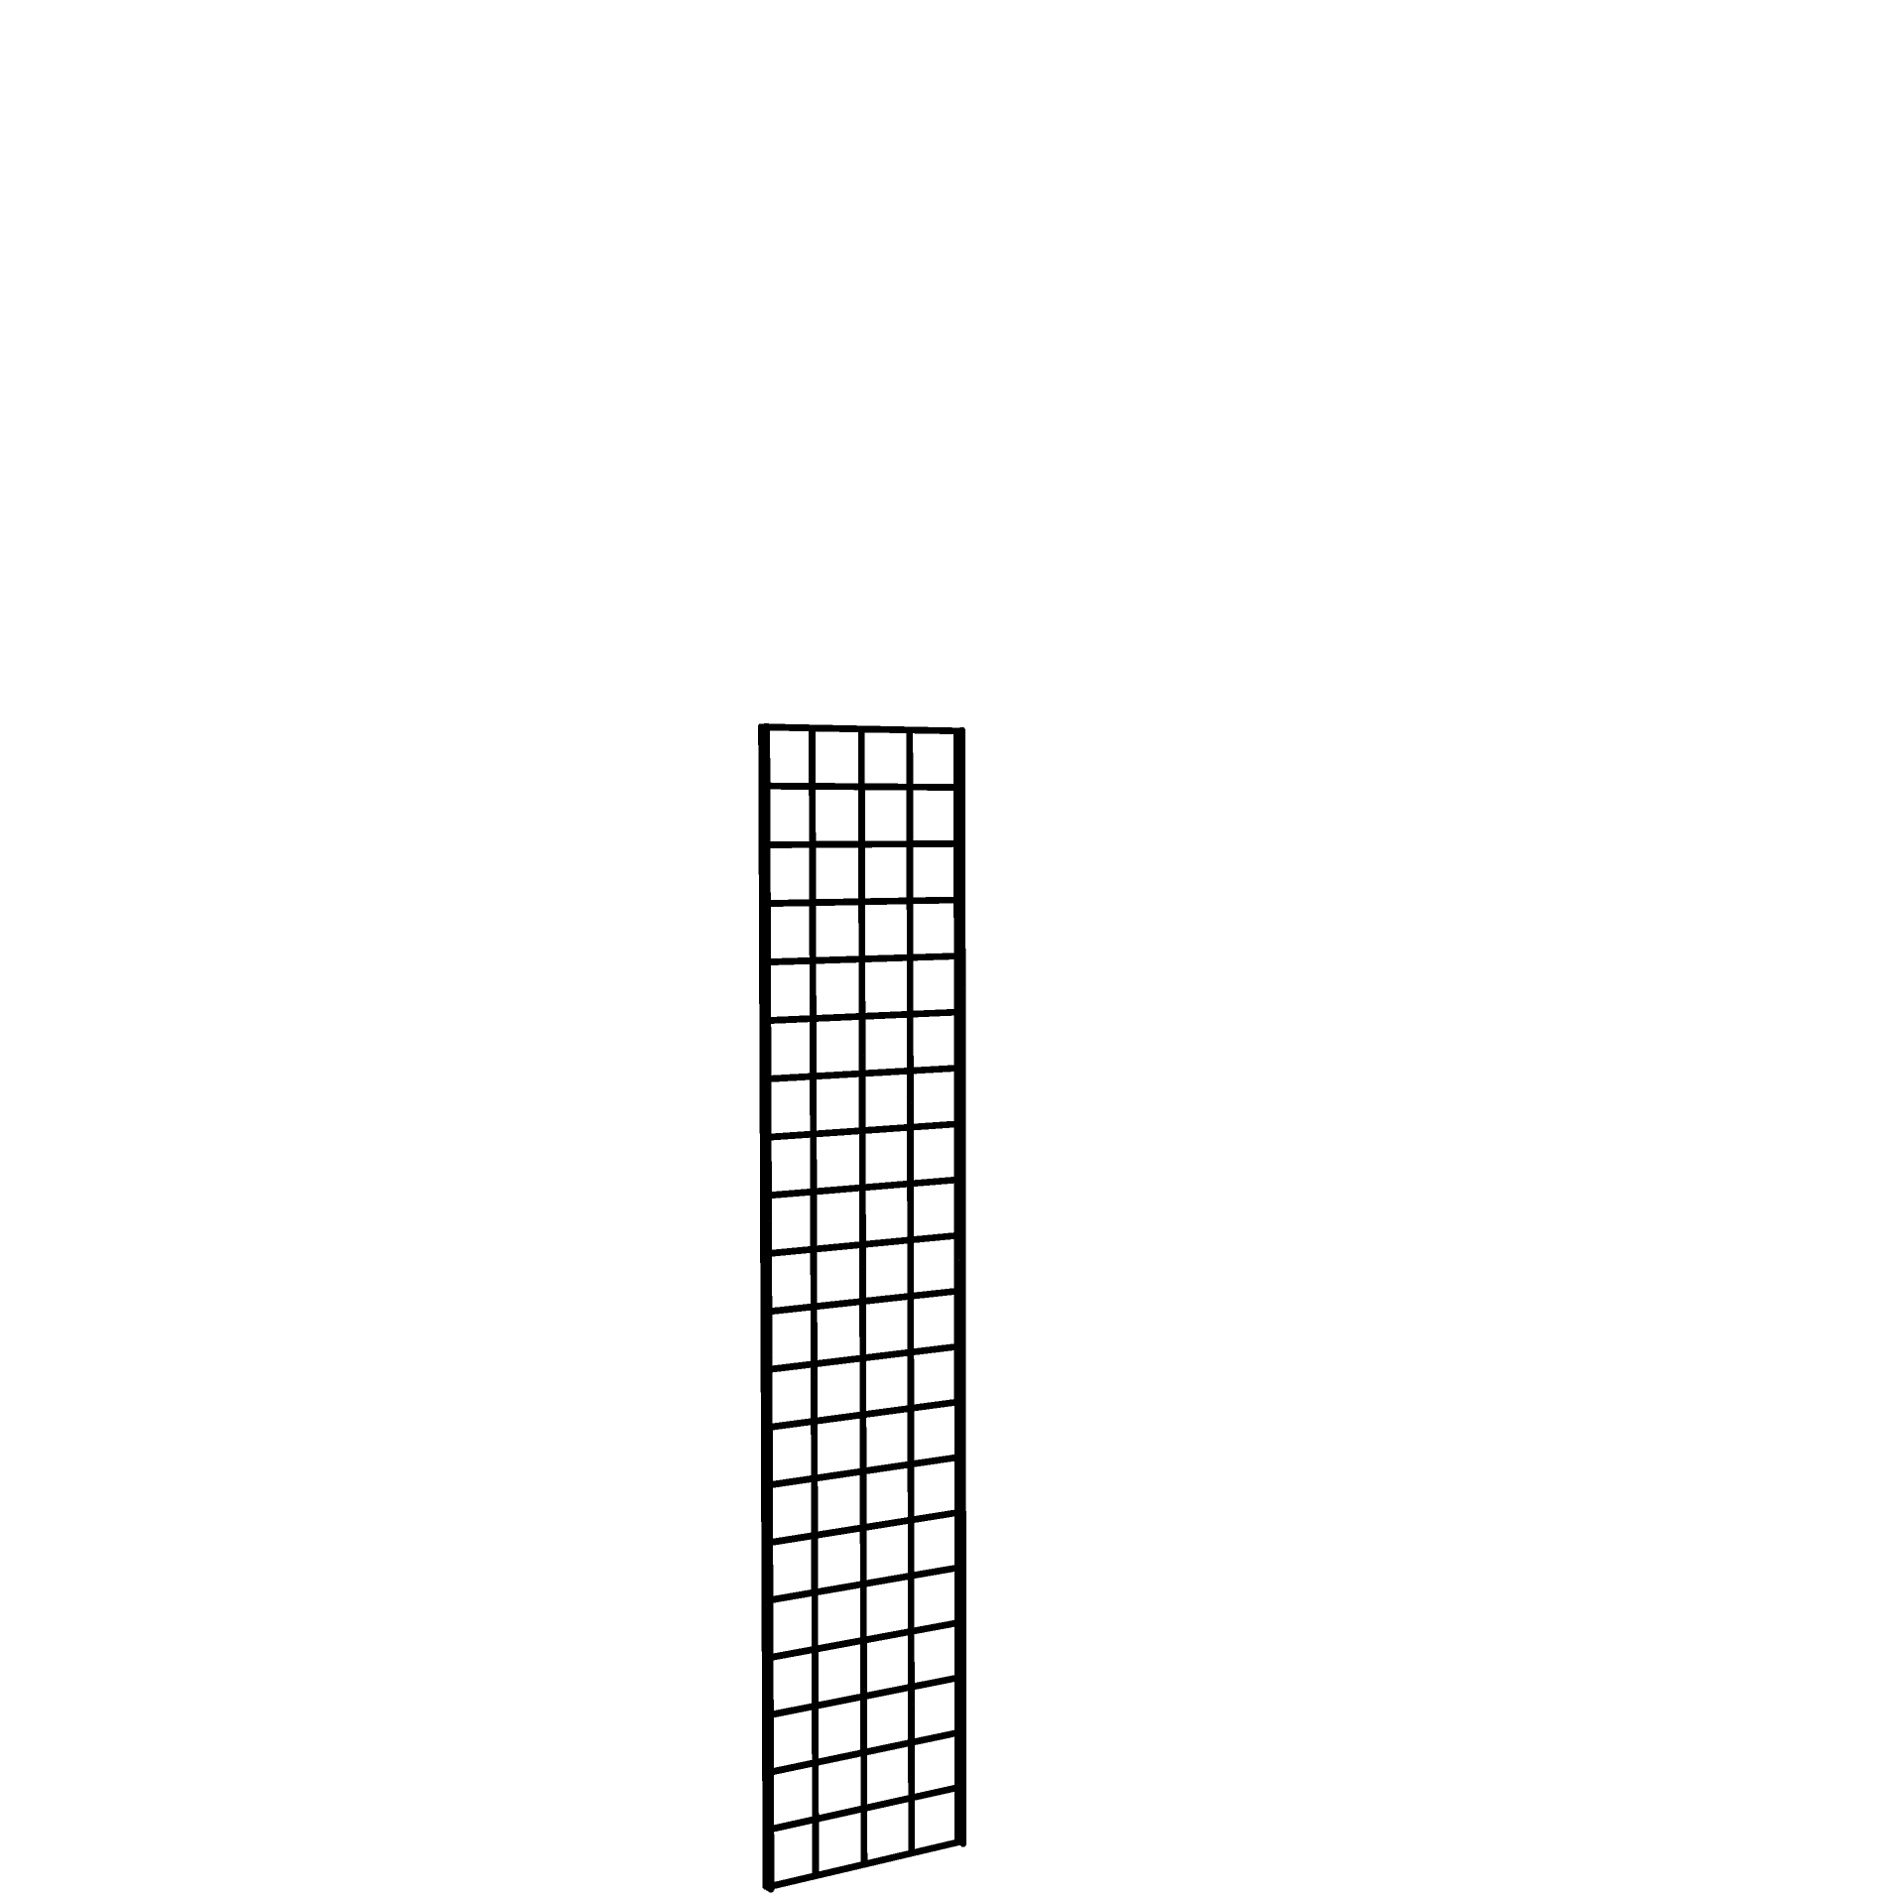 Gridwall Panel 1' x 5' Black